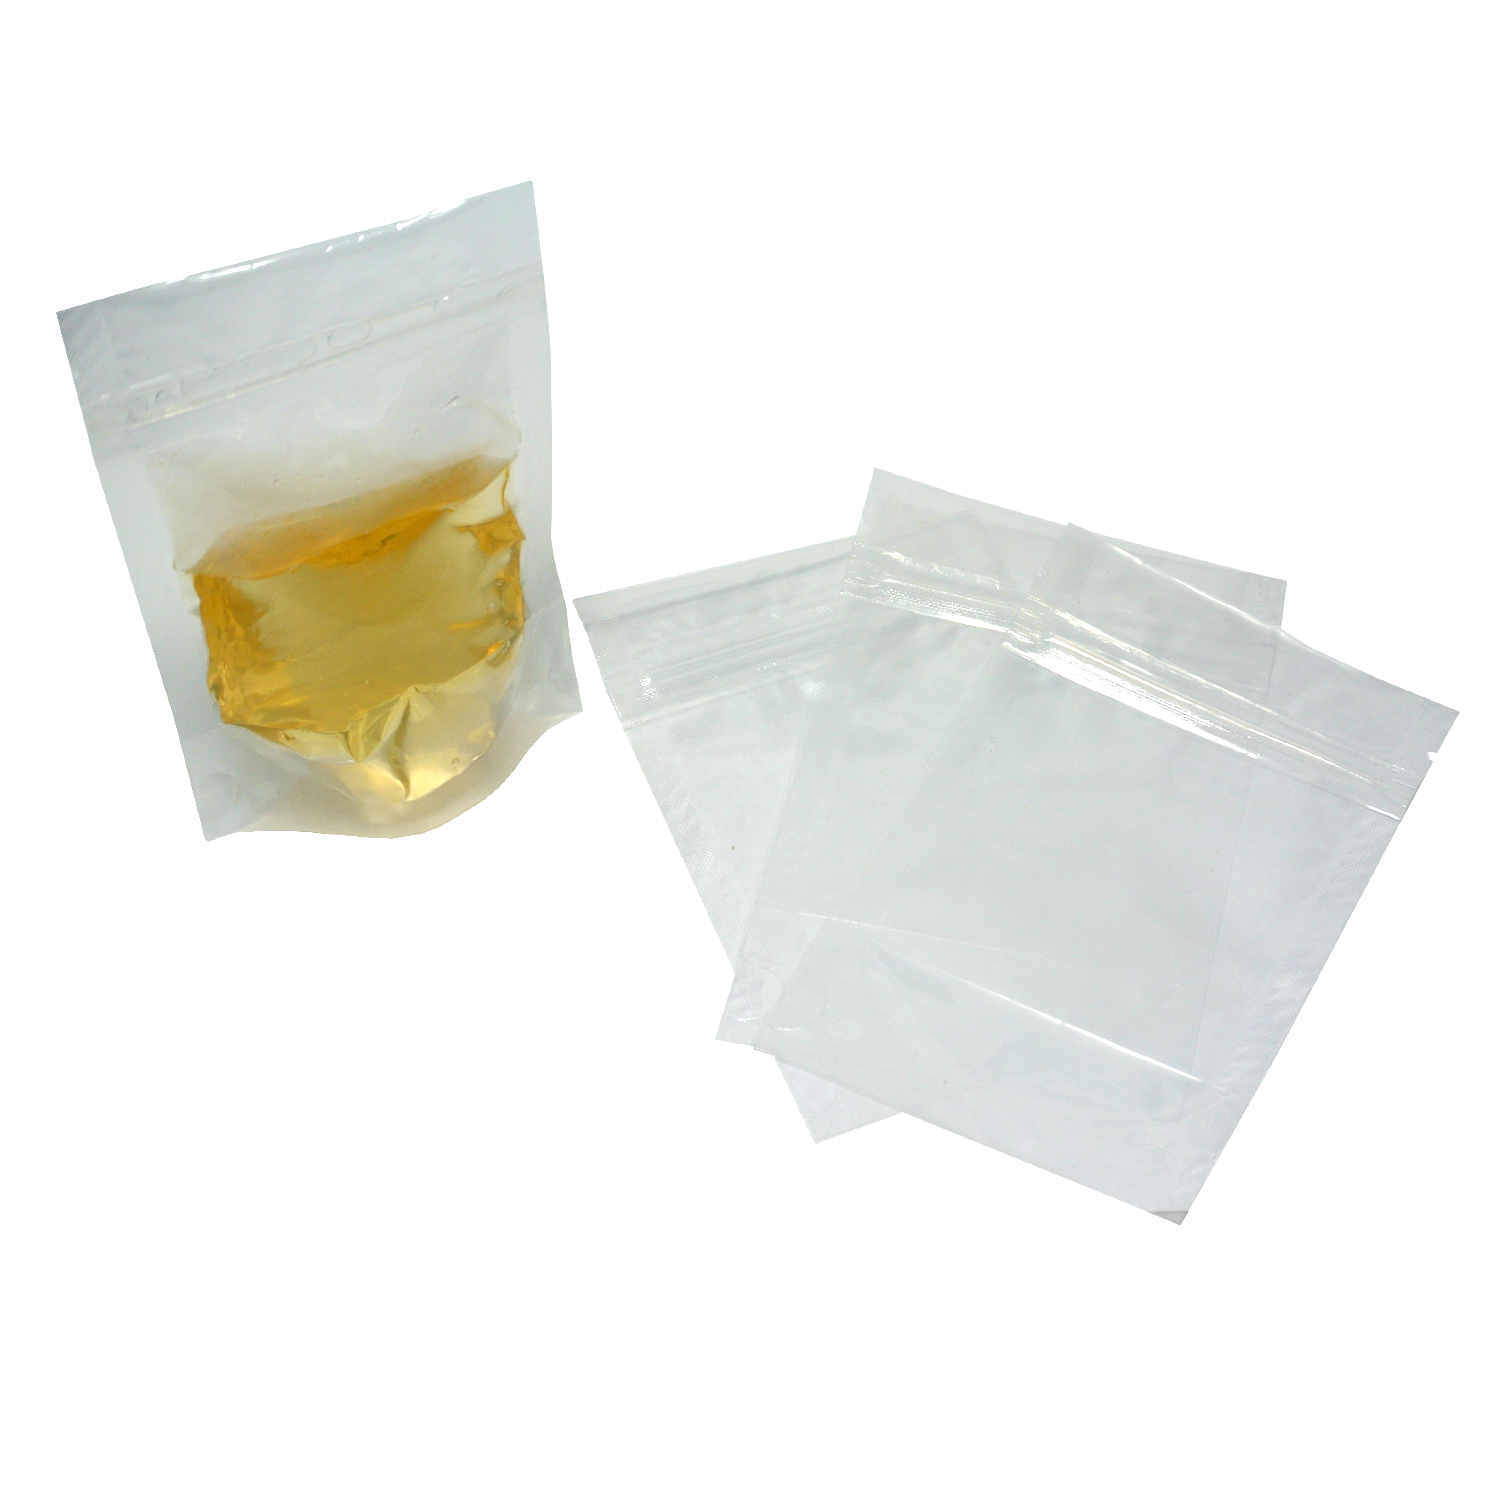 Urine Specimen Bag